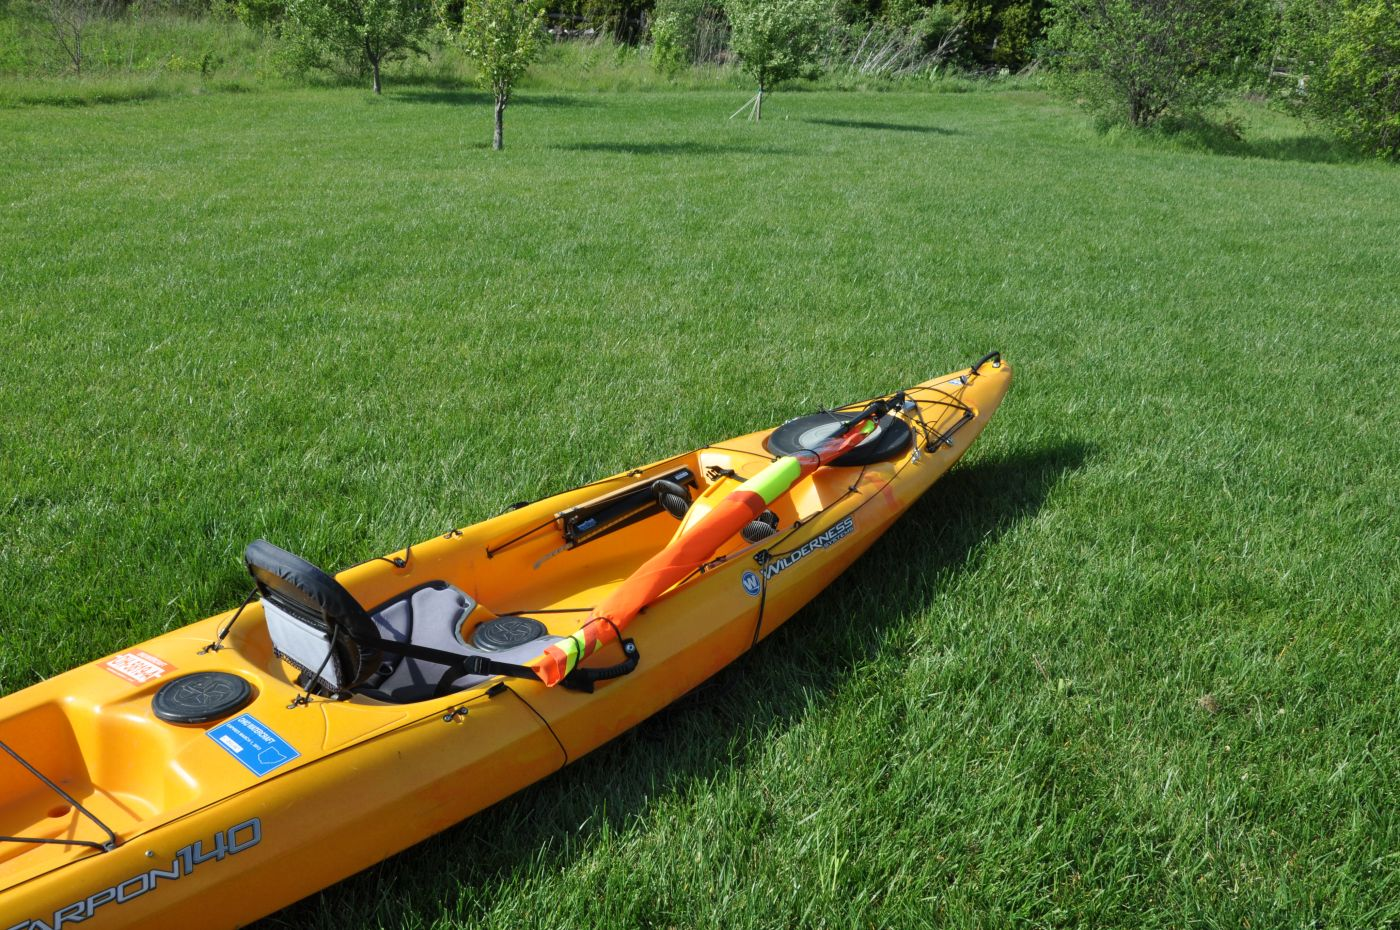 hight resolution of kayak sail lowered kayak sail stowed